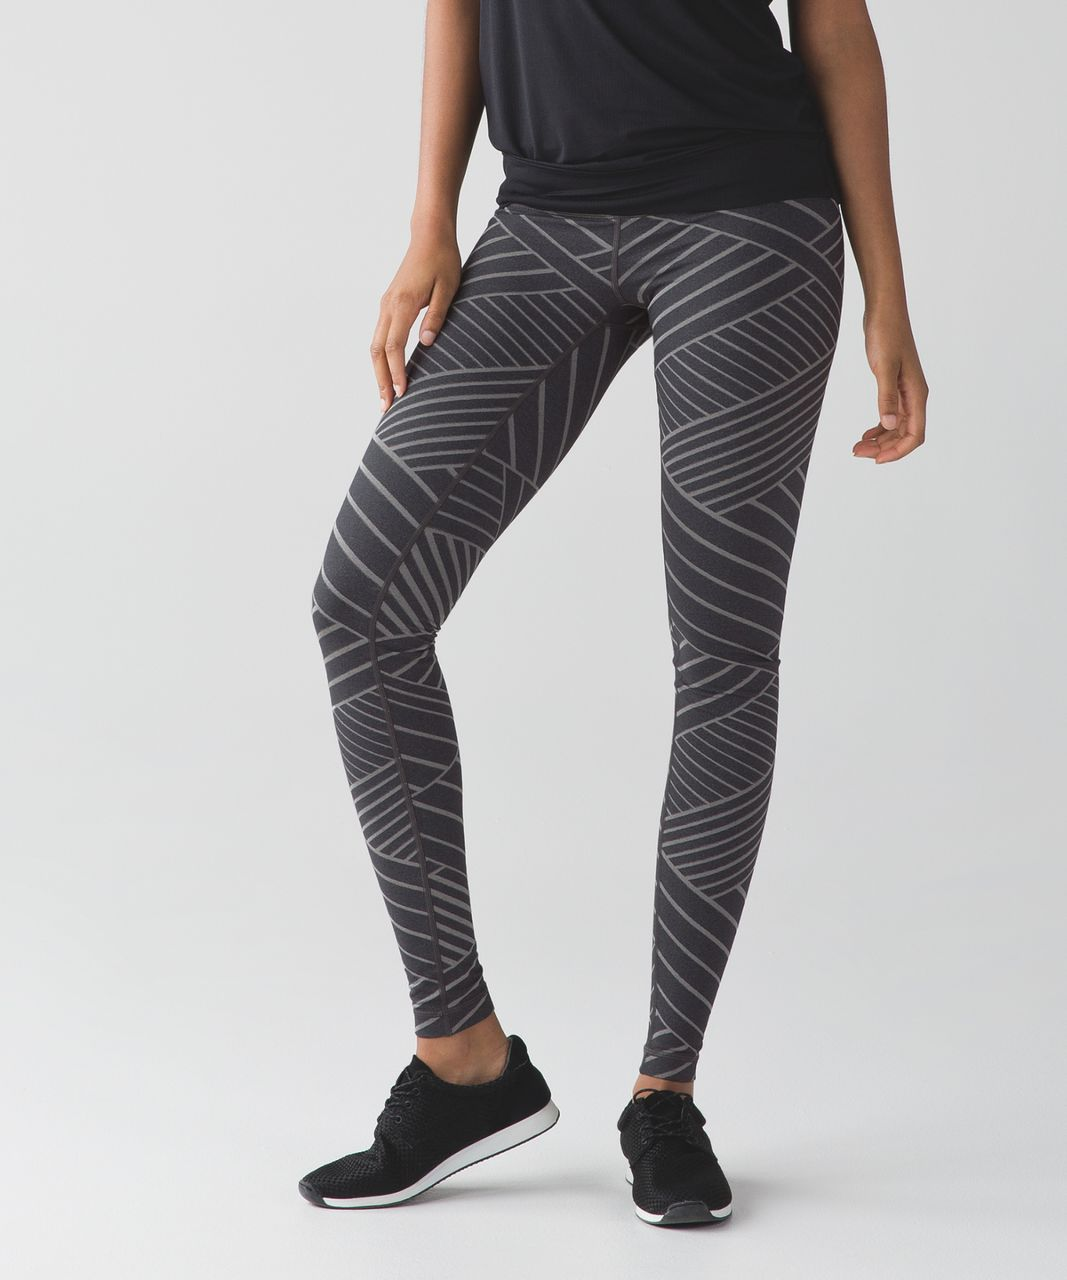 7404e7abc921db Lululemon Wunder Under Pant III - Luon Metallic Lumatrix Heathered Deep  Coal Silver - lulu fanatics